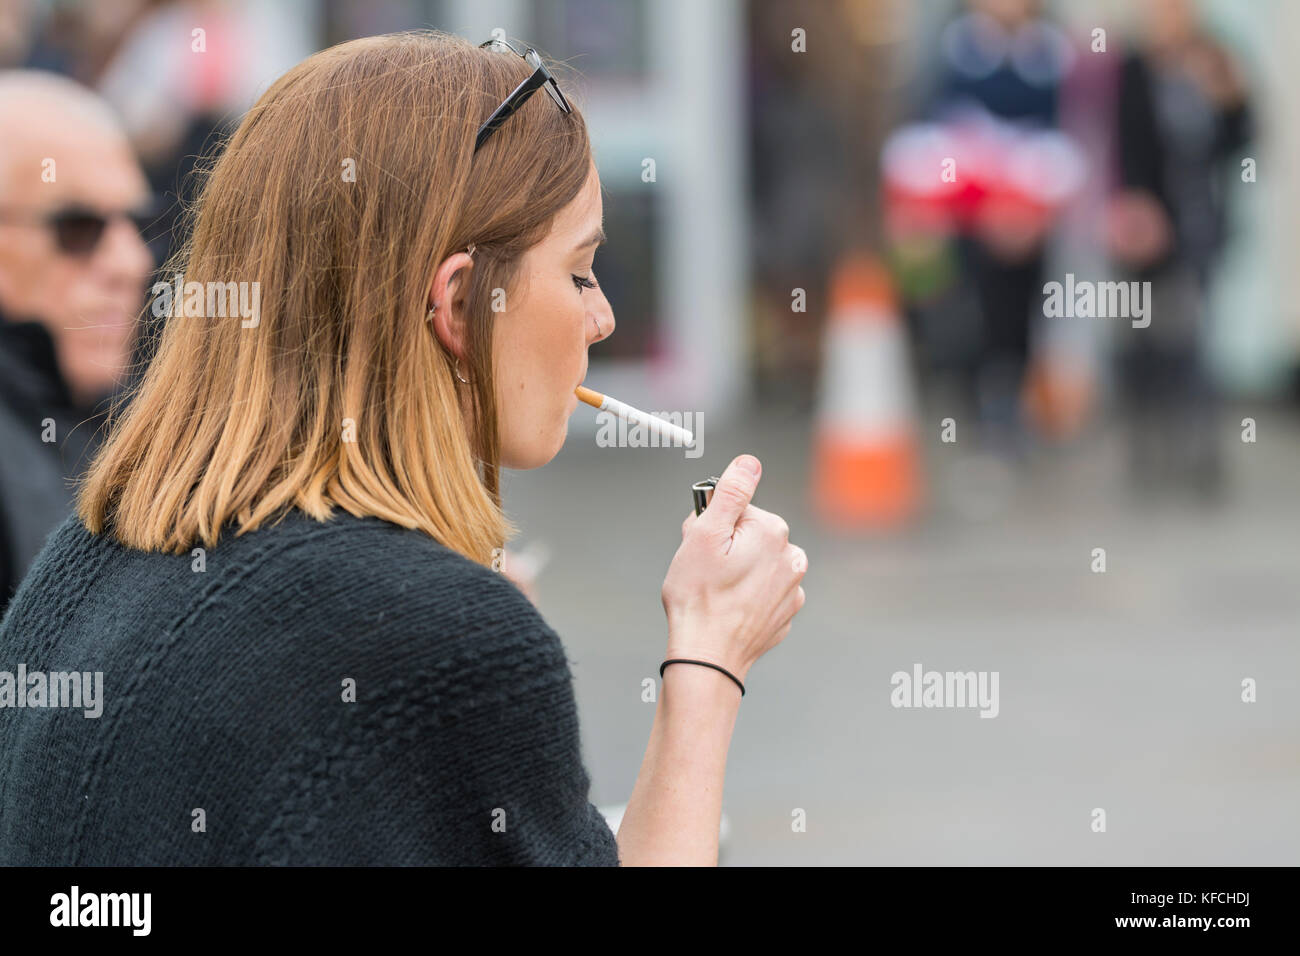 Young woman lighting a cigarette in the UK. Unhealthy lifestyle. - Stock Image